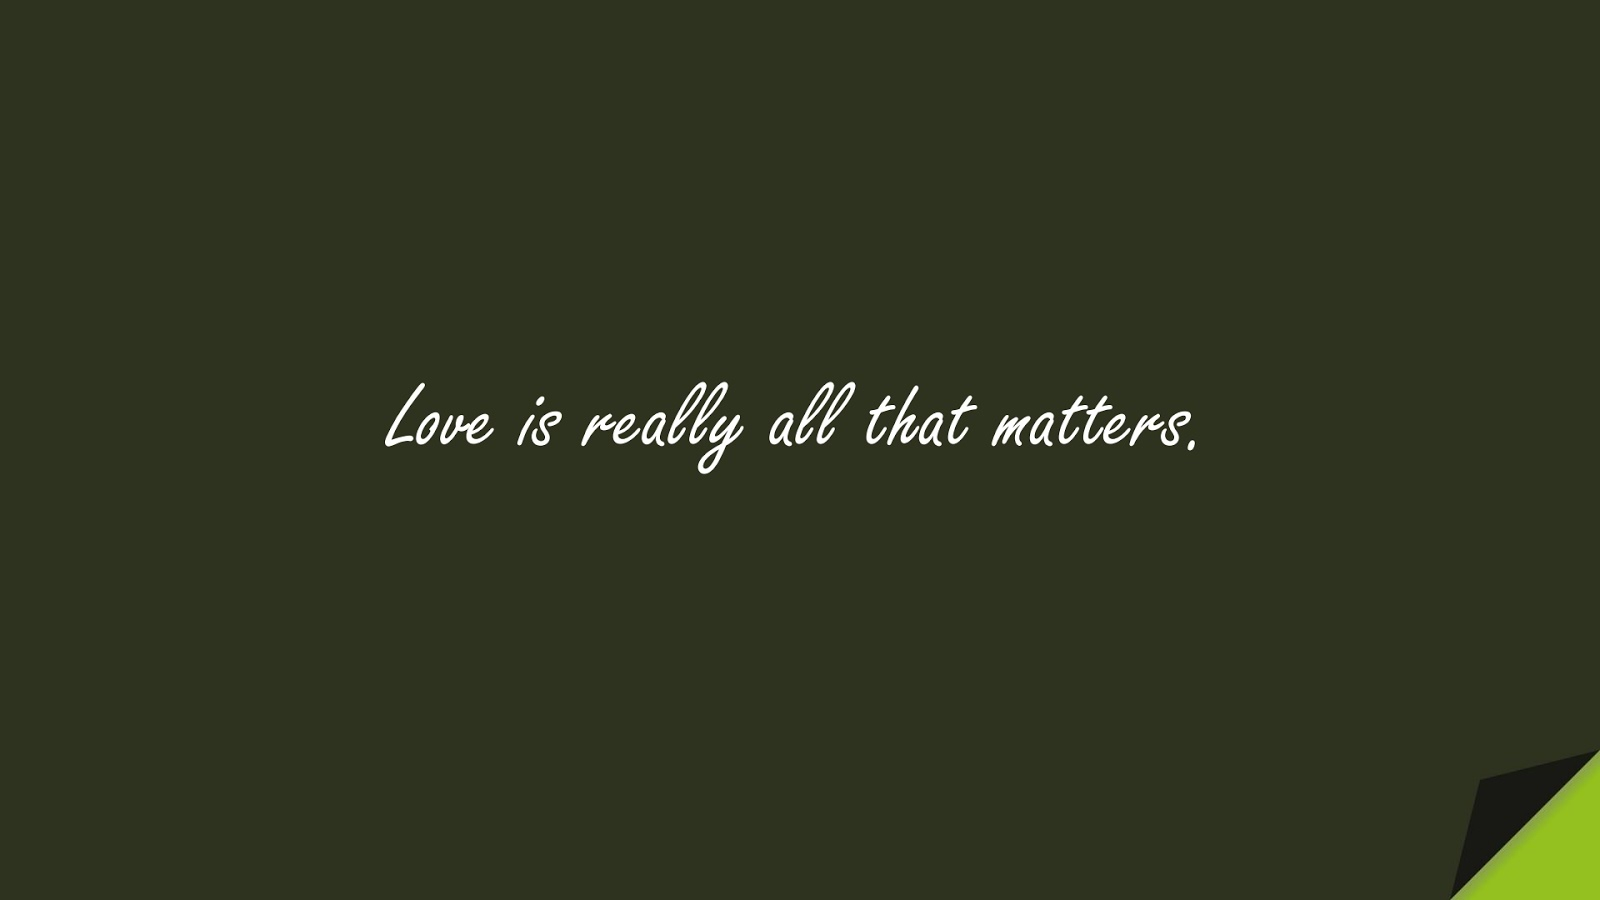 Love is really all that matters.FALSE